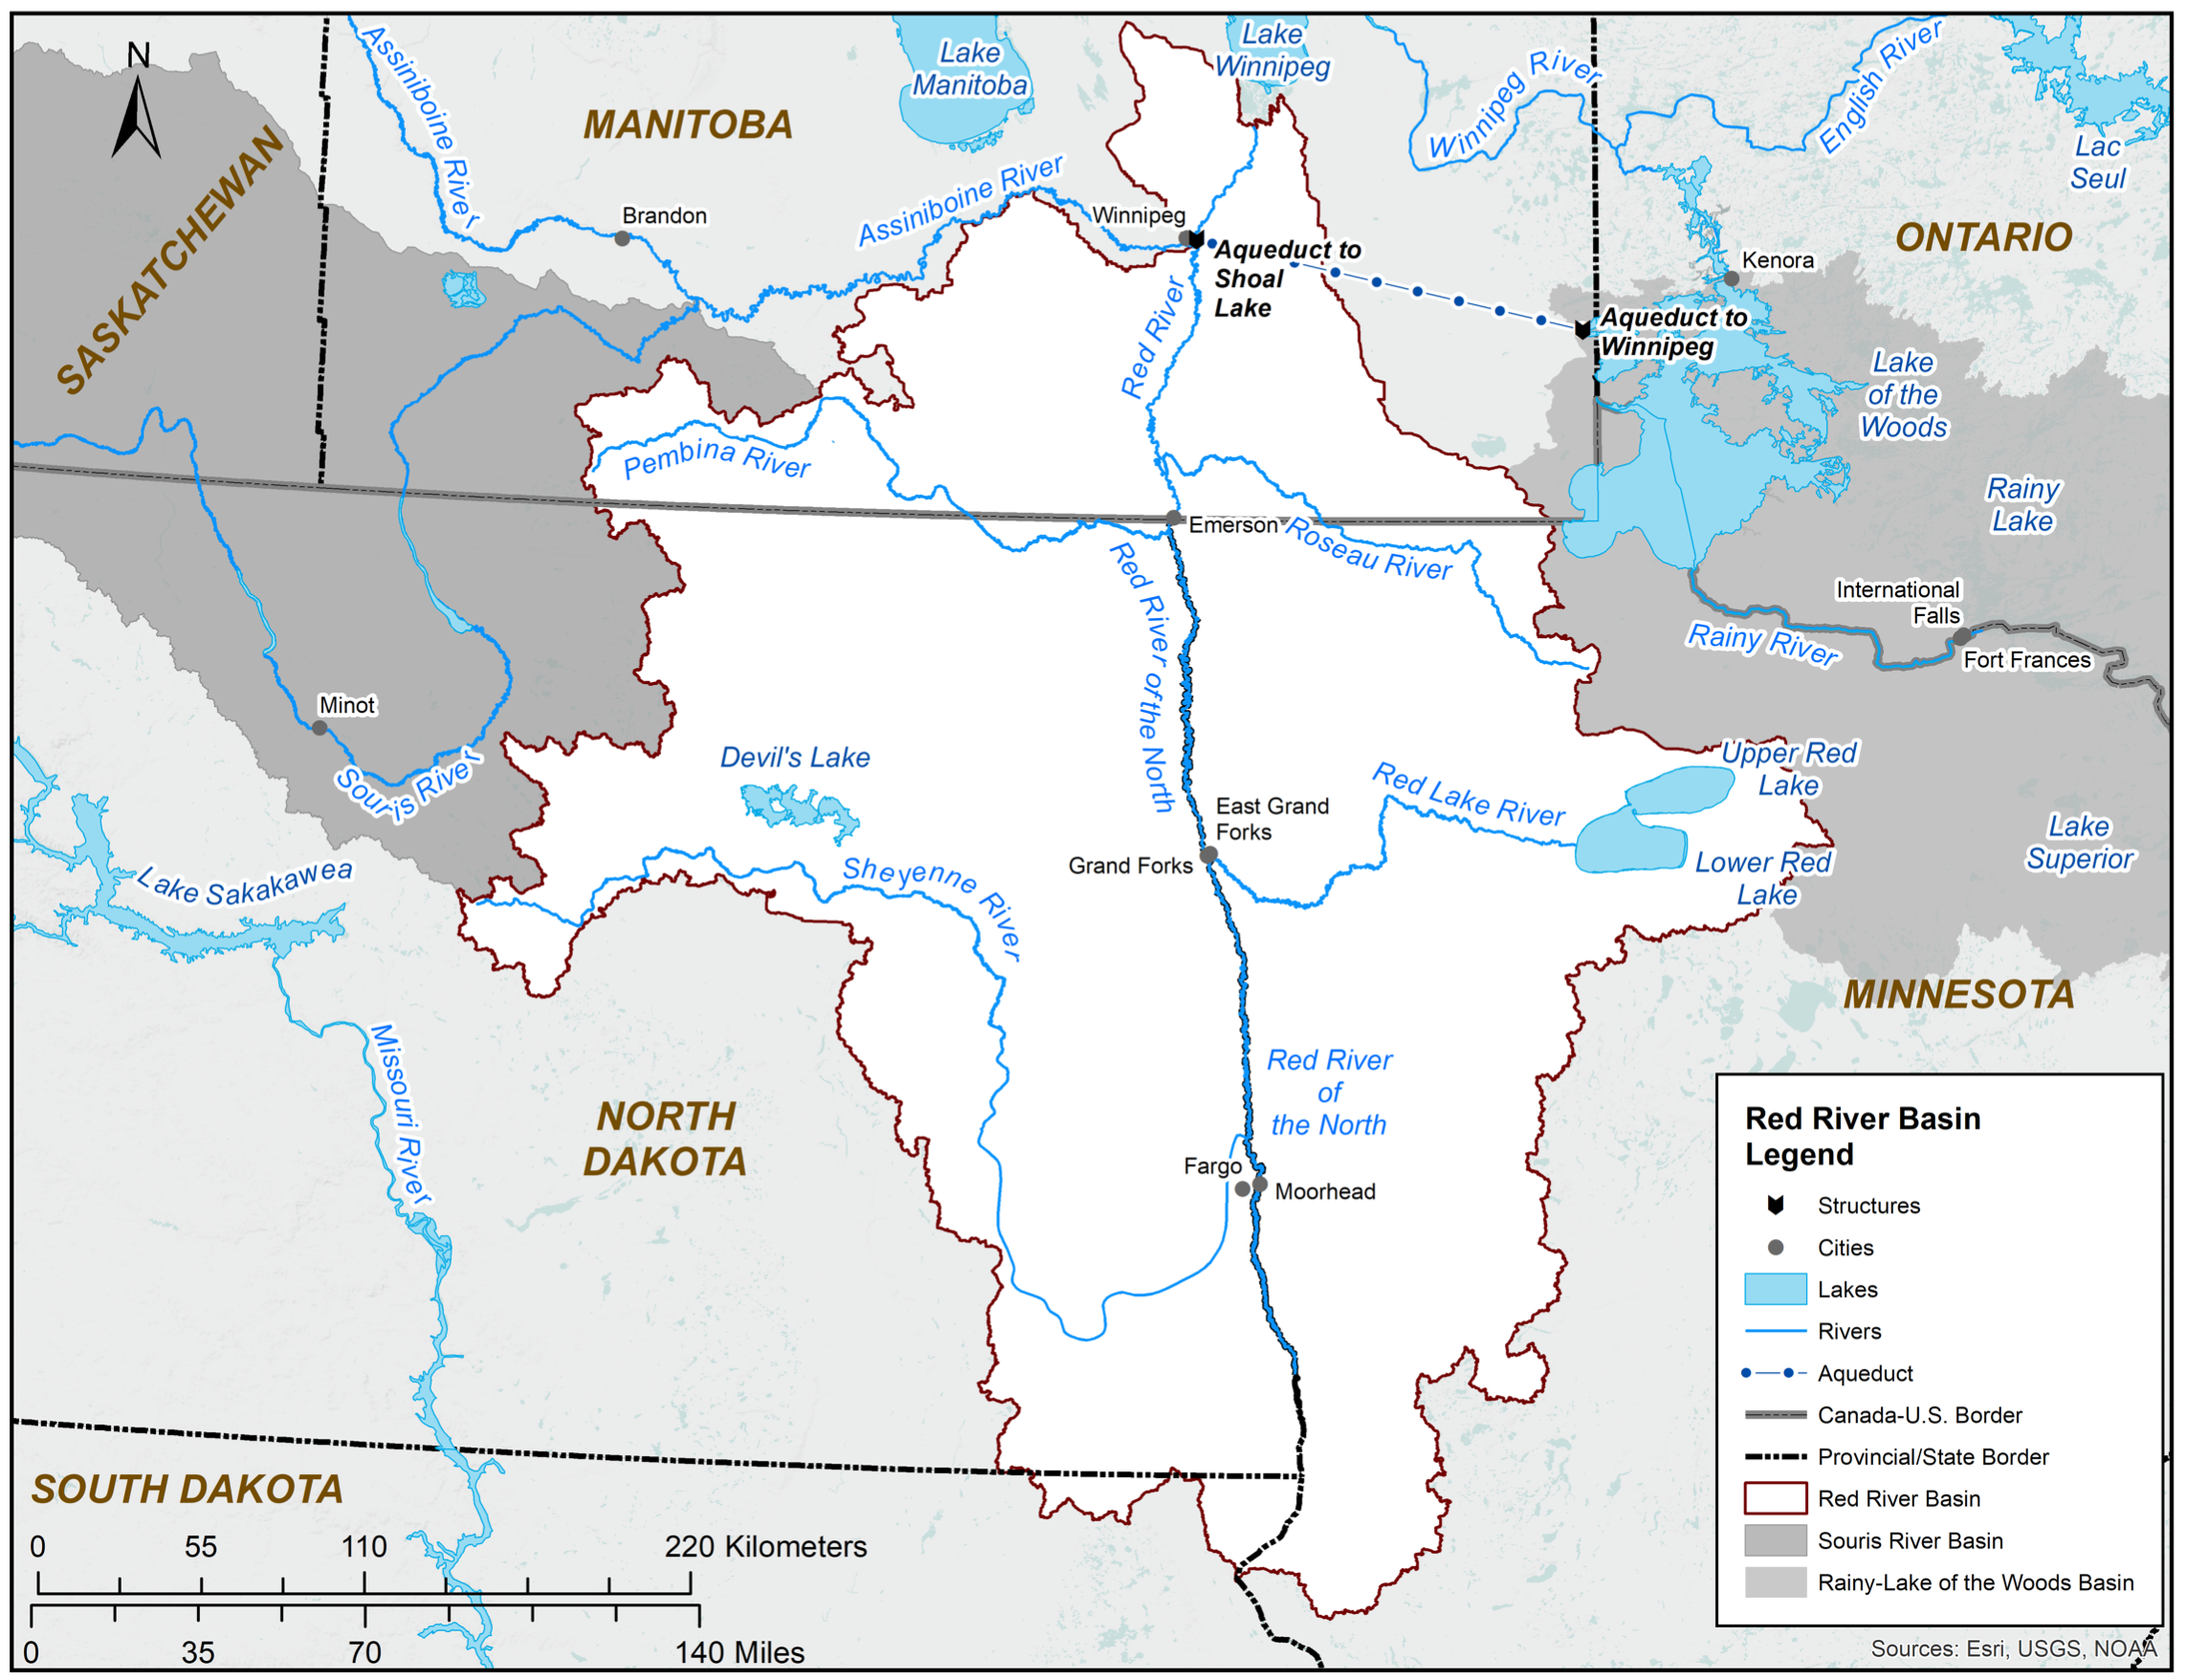 Map of Red River Basin - Credit: International Joint Commission